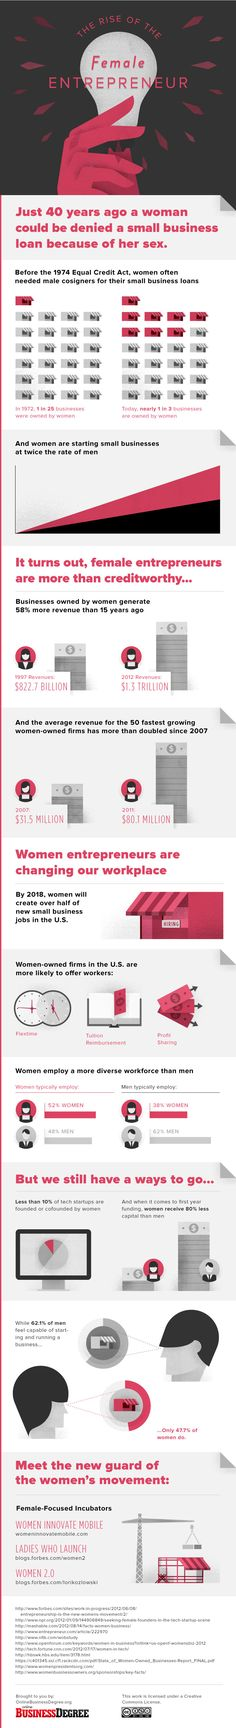 An informative infographic highlighting women's progress as entrepreneurs.  Courtesy of onlinebusinessdegree.org